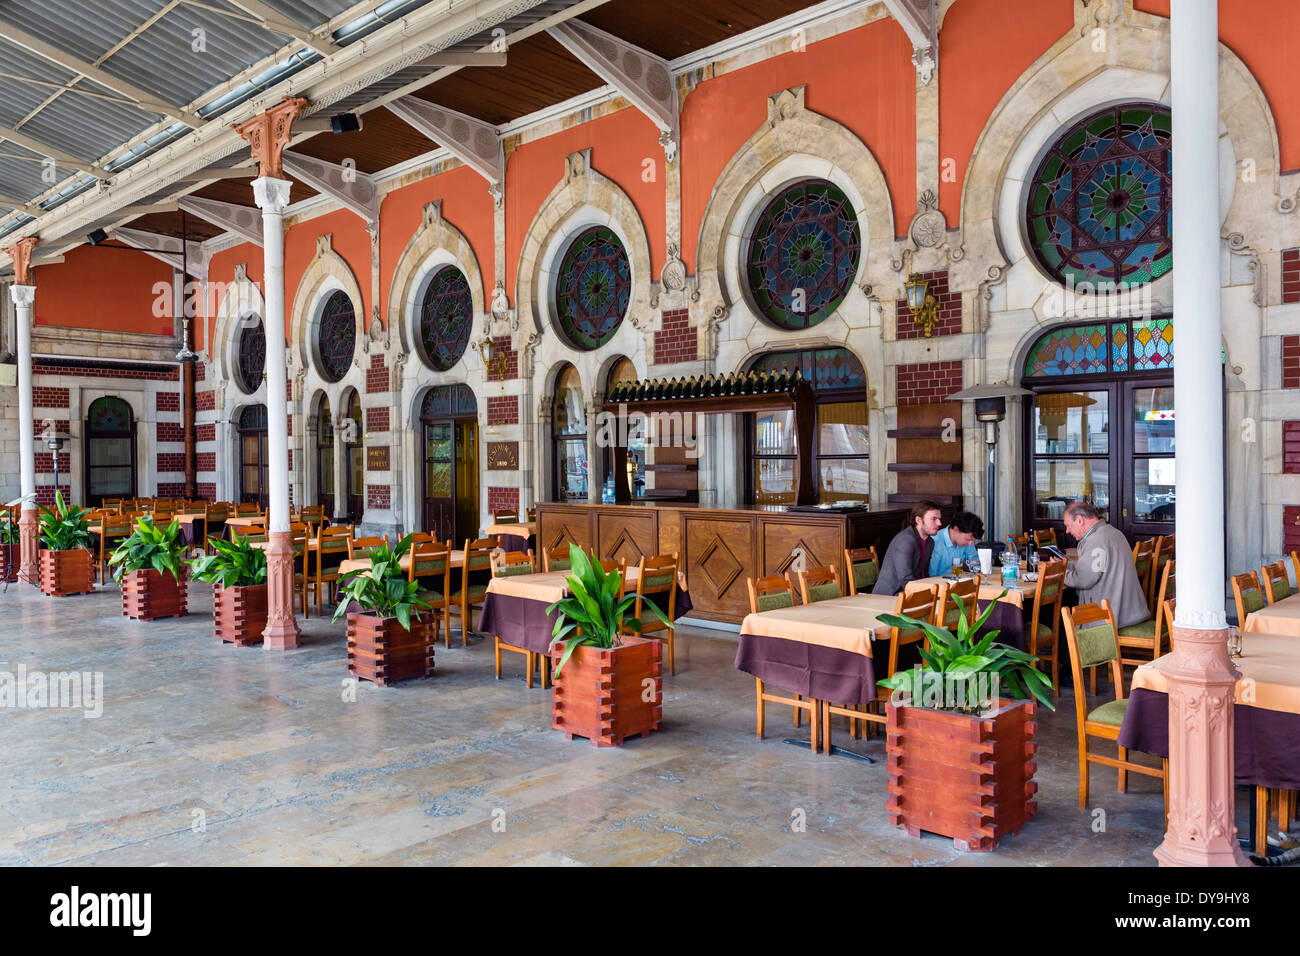 platform entrance to orient express restaurant at sirkeci station stock photo 68438476 alamy. Black Bedroom Furniture Sets. Home Design Ideas